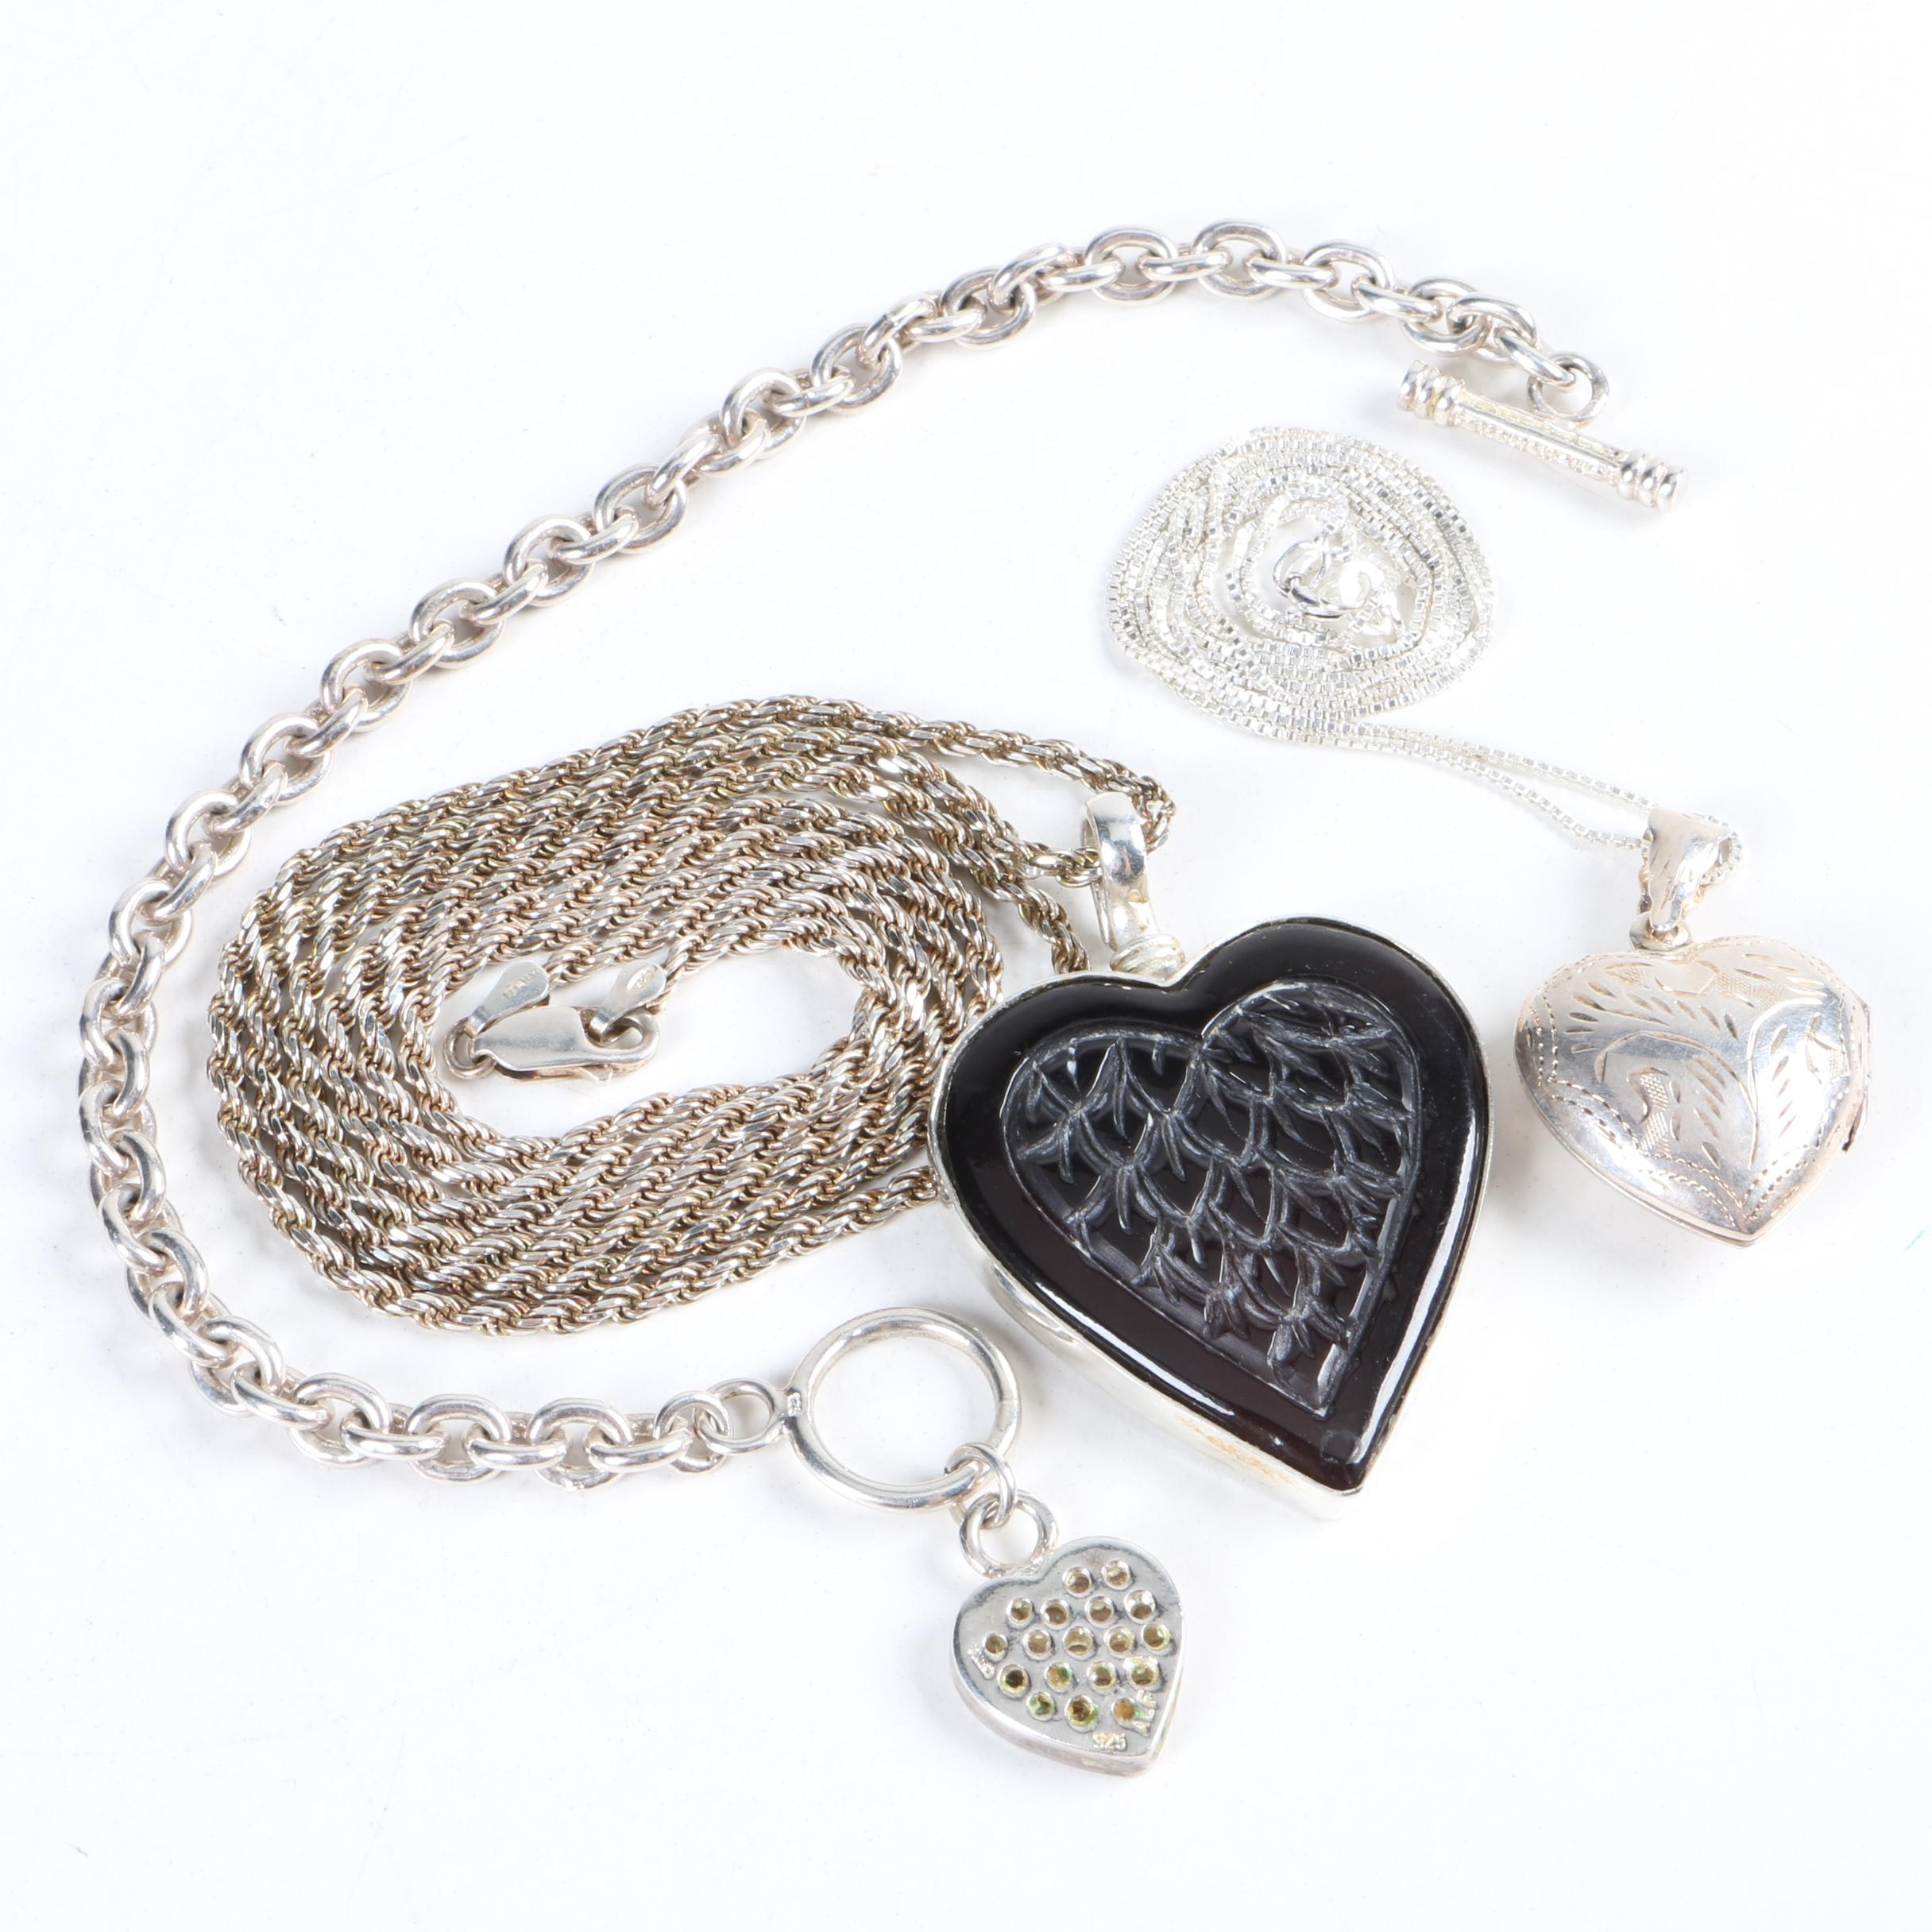 Necklaces and Bracelet Including Cubic Zirconia and Sterling Silver